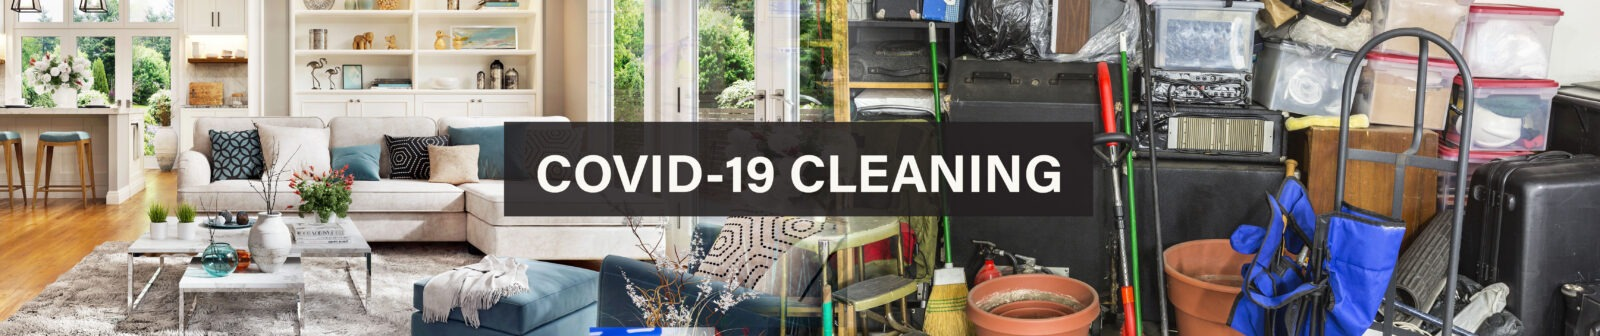 COVID19 Cleaning